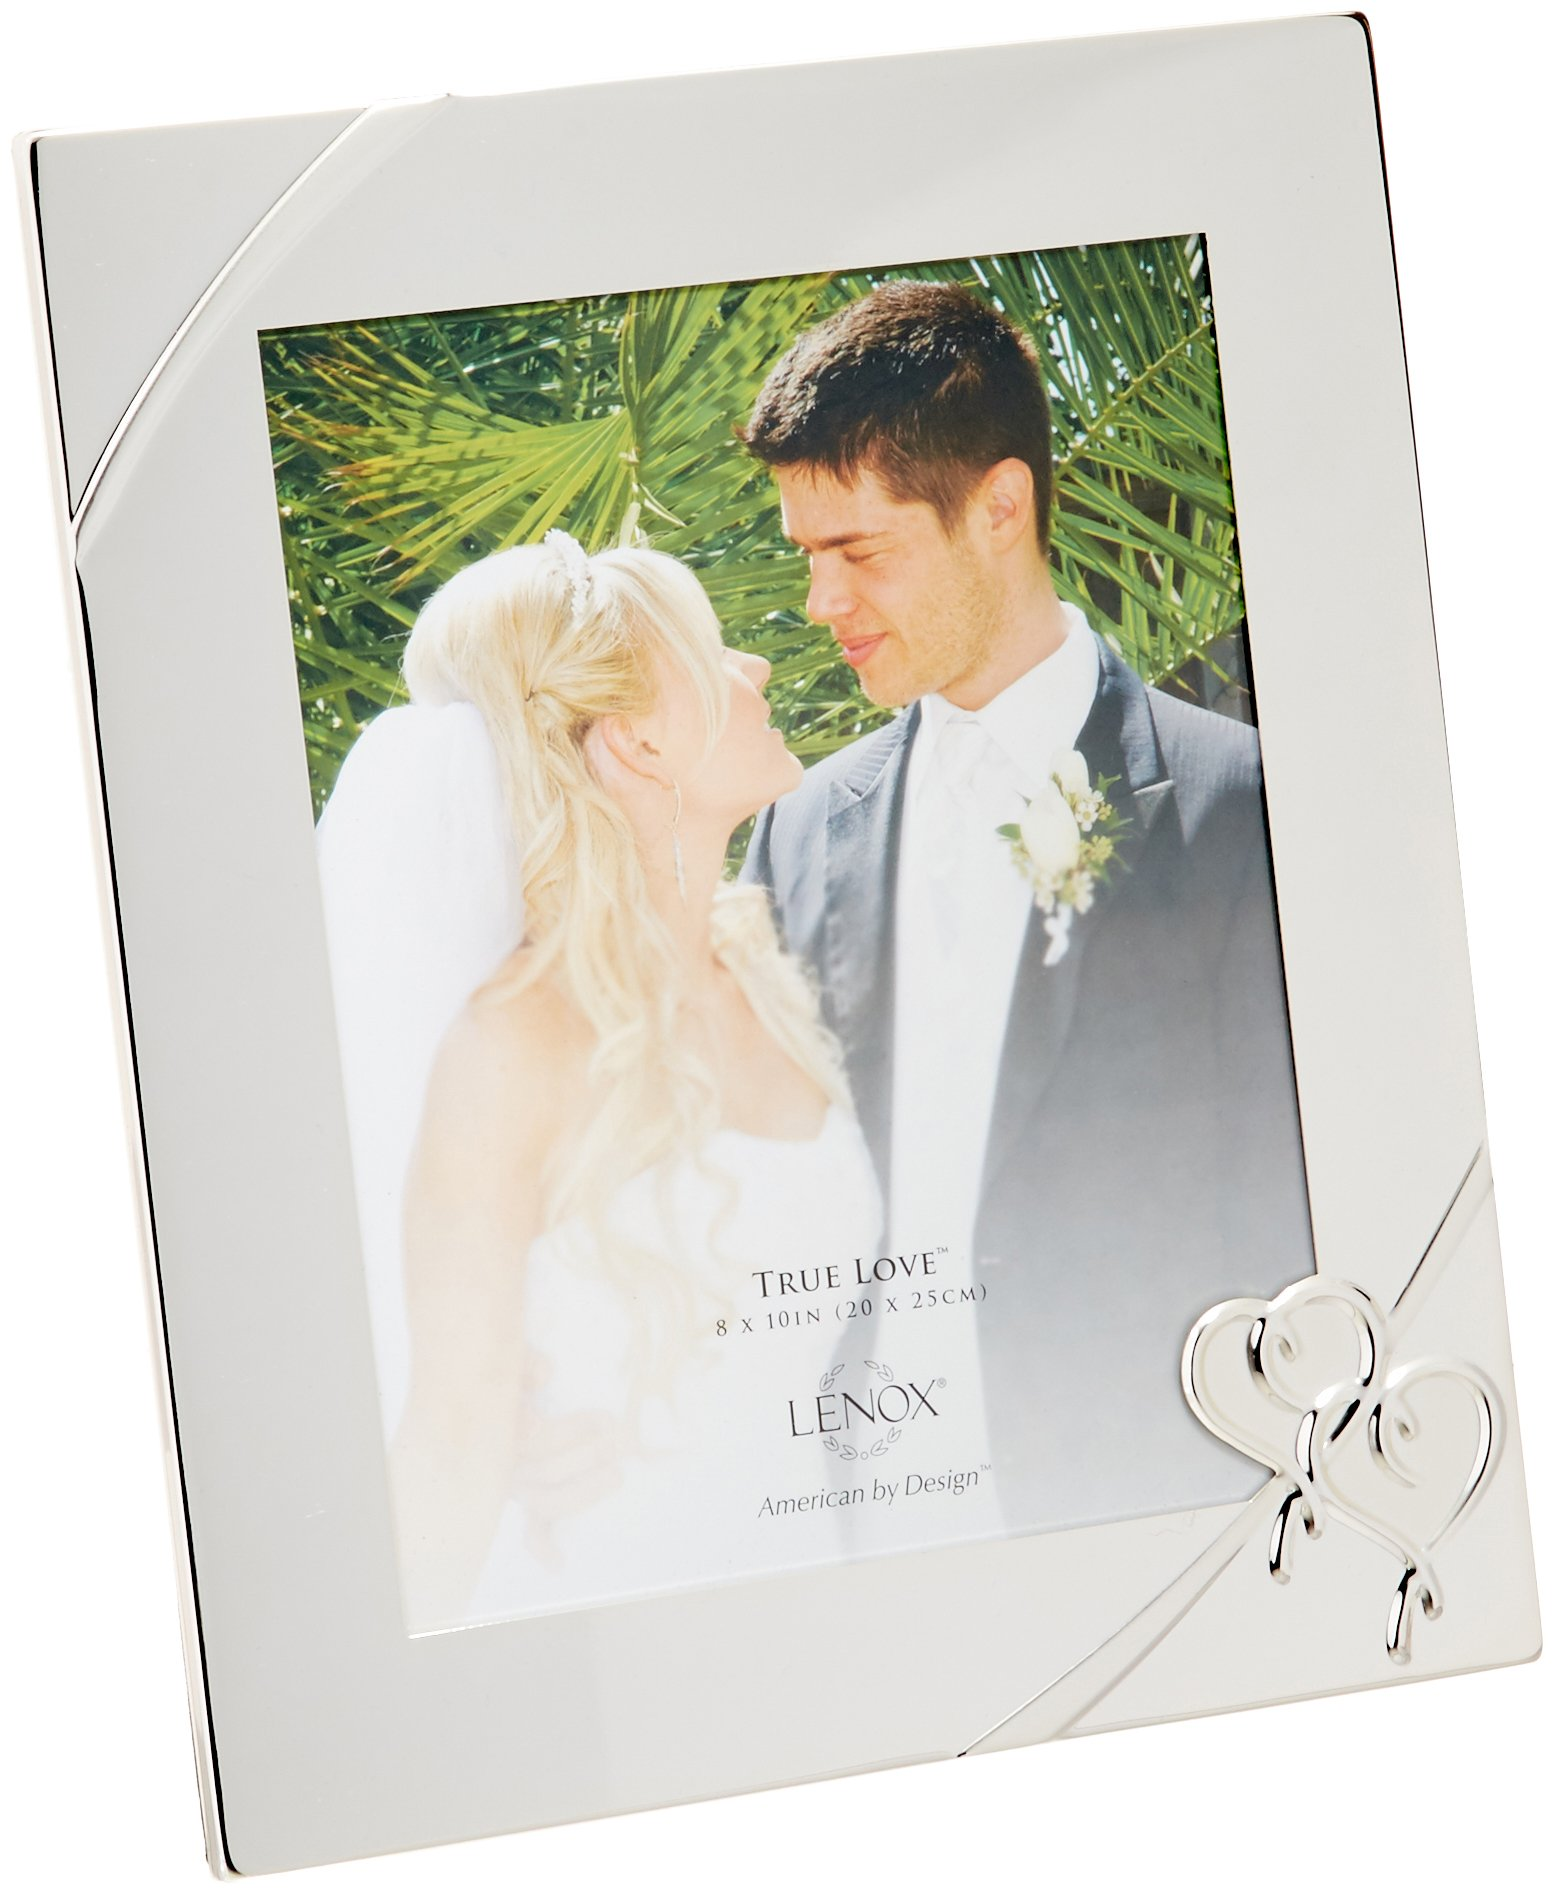 Lenox True Love 8x10 Picture Frame by Lenox